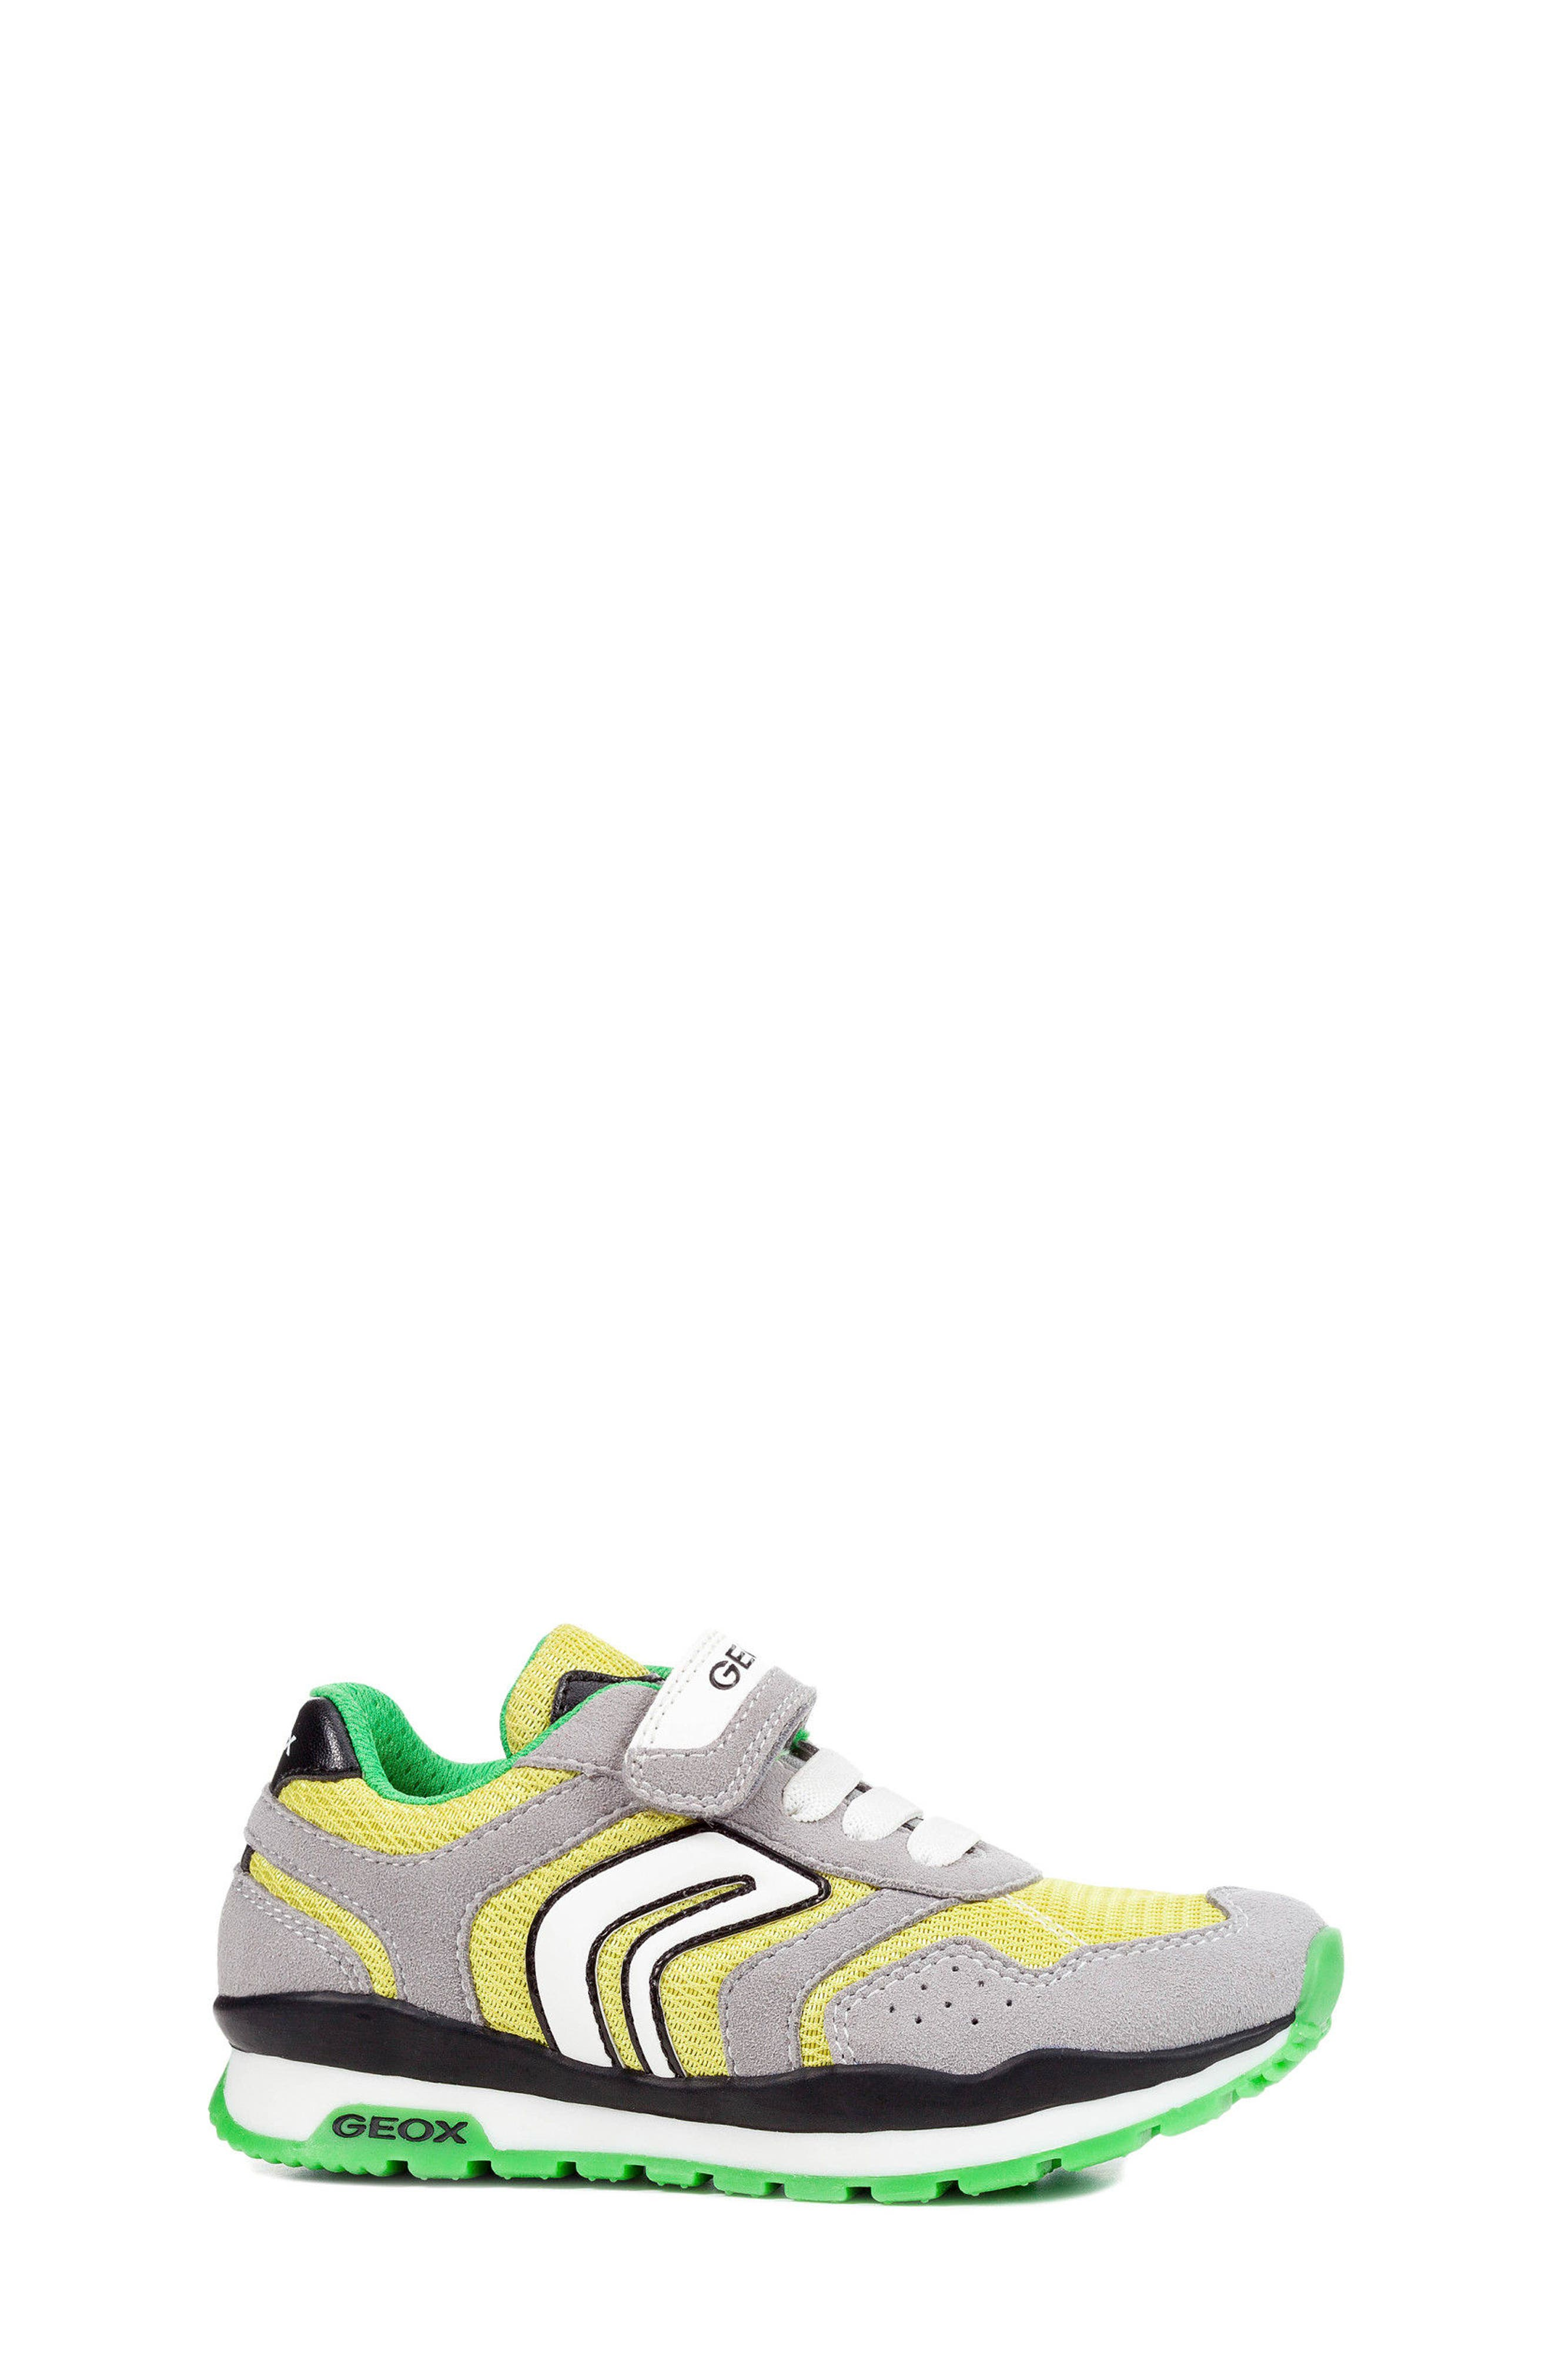 Pavel Low Top Sneaker,                             Alternate thumbnail 3, color,                             GREY/ LIME